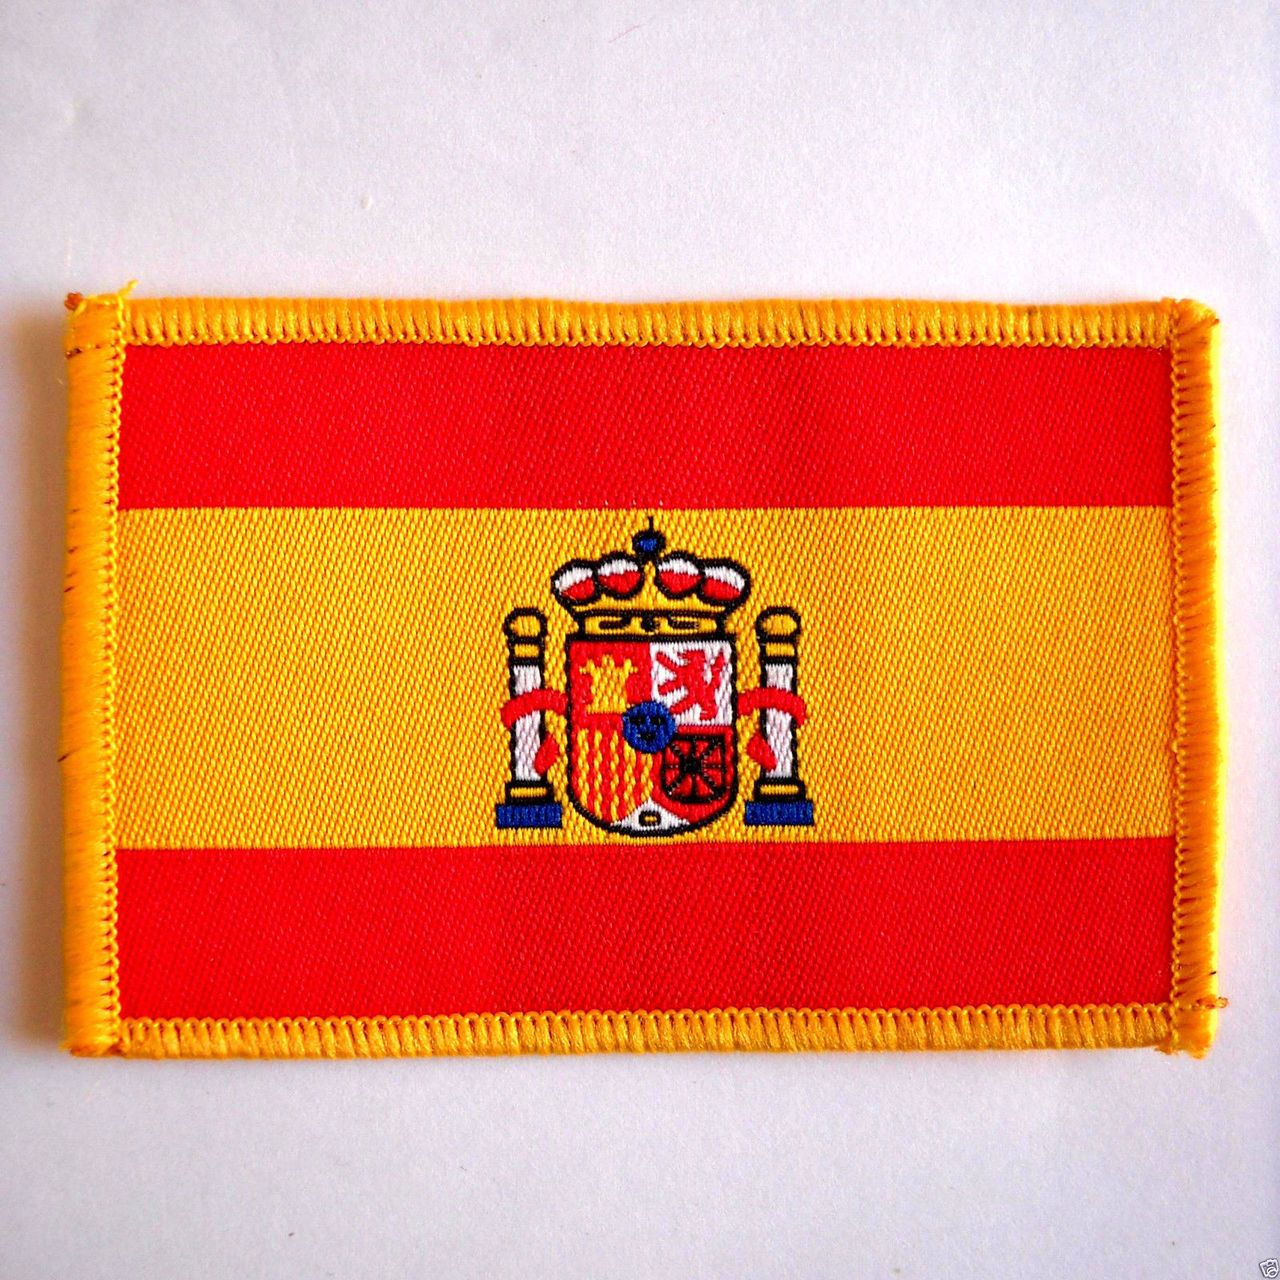 spain national flag embroidered sew on parche spanish cloth badge